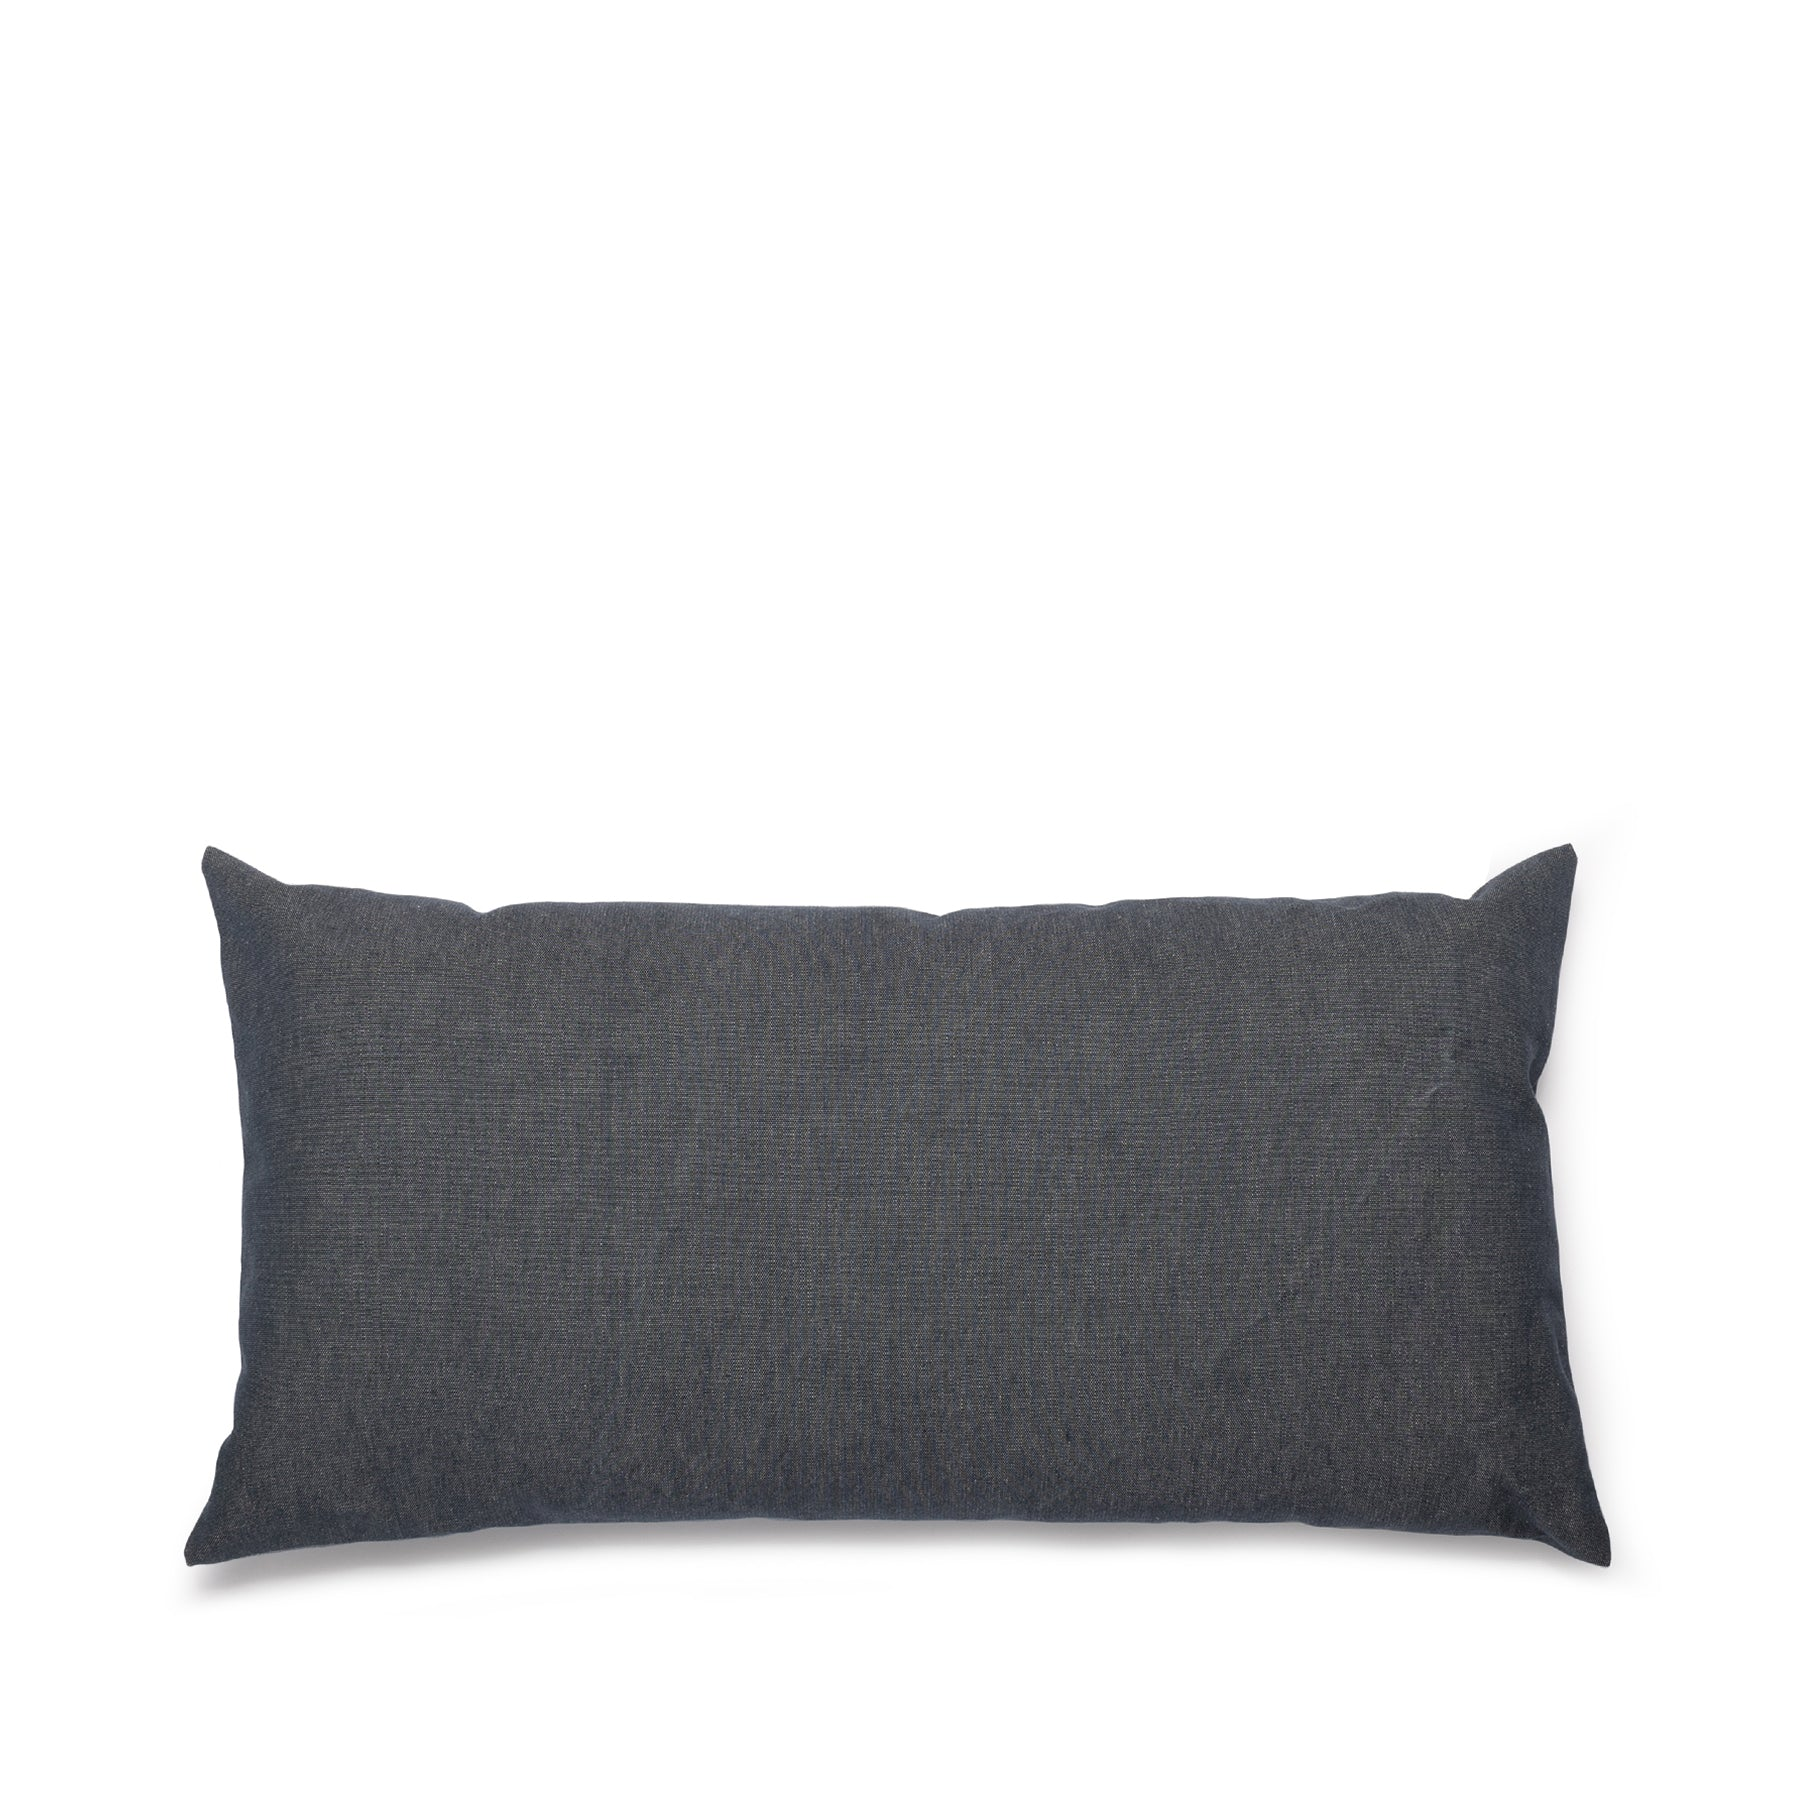 Sturdy Boy Pillow in Nightfall Zoom Image 1